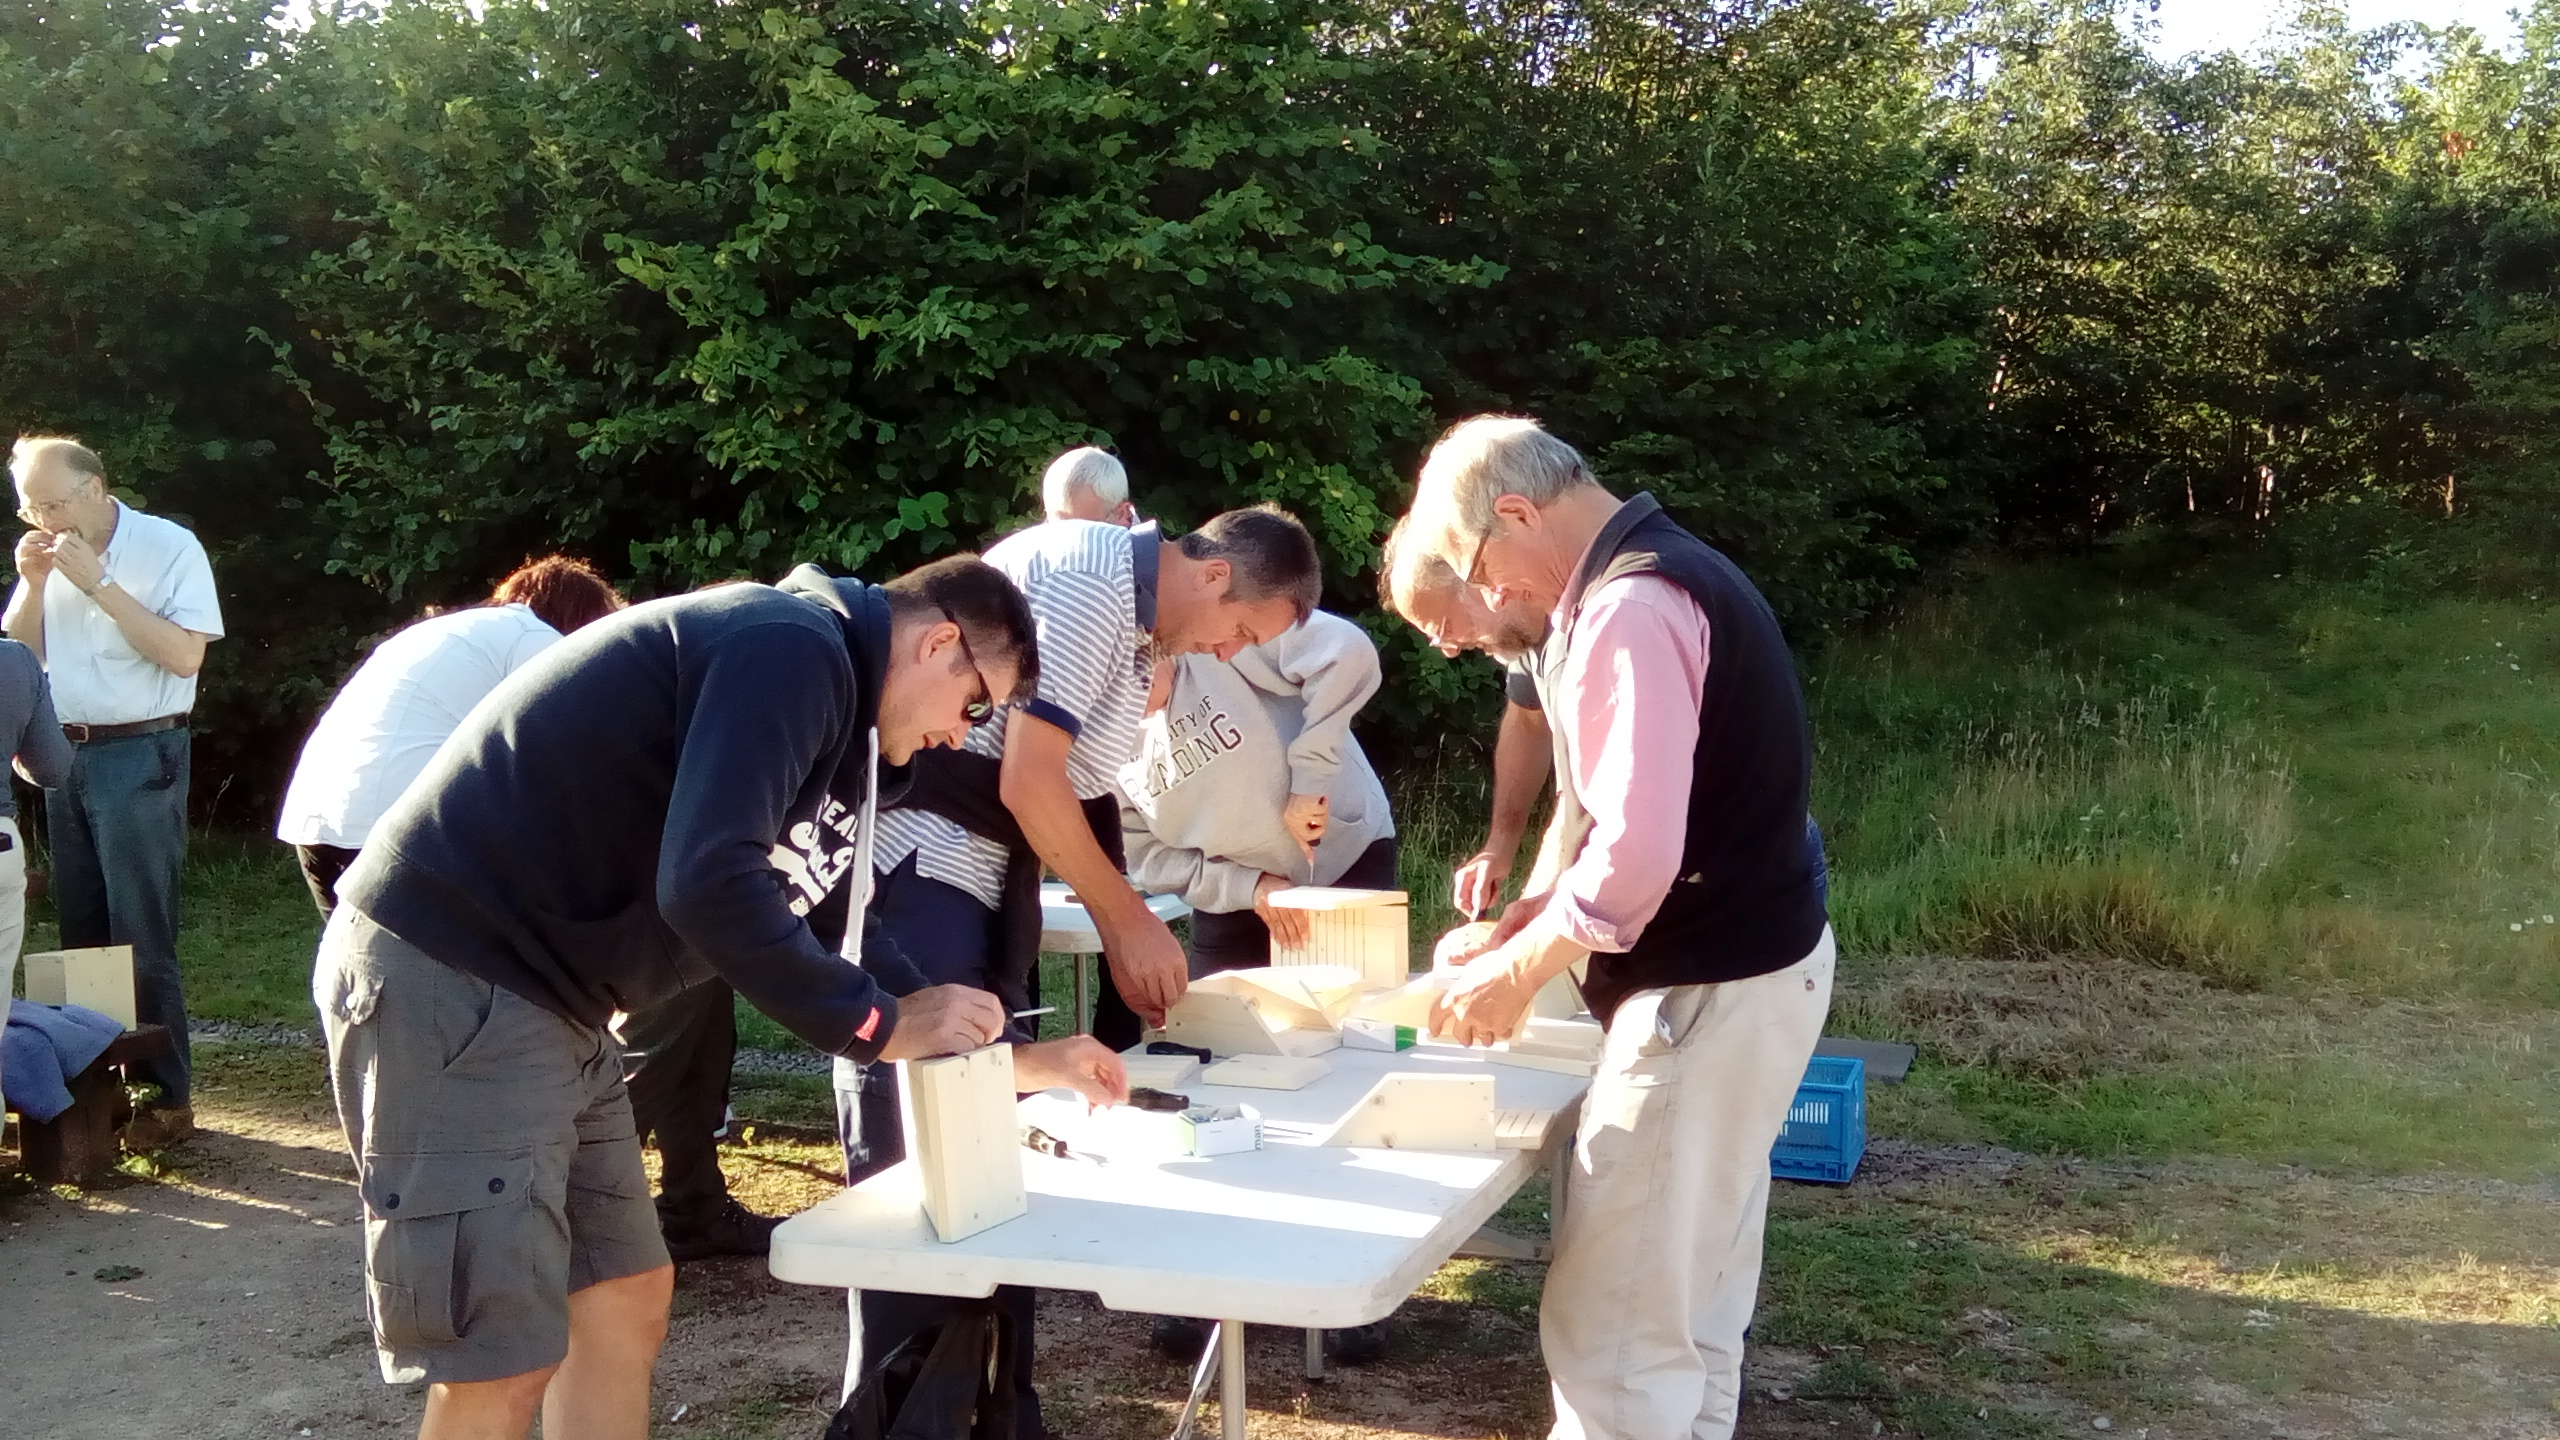 Outstanding Leicestershire  Rutland Bat Group  Gallery With Glamorous  To Green Event At Donisthorpe Woodlands We Had Our Information Stand  Answered Questions And Helped Out On A Bat Walk Where We Got To See Good  Views Of  With Cool Handy Garden Machinery Also Garden Centres Winchester Area In Addition Schonbrunn Gardens Vienna And Dobbies Garden Centre Dundee As Well As Weed Control Garden Additionally Who Sang Garden Party From Lrbatgroupbtckcouk With   Glamorous Leicestershire  Rutland Bat Group  Gallery With Cool  To Green Event At Donisthorpe Woodlands We Had Our Information Stand  Answered Questions And Helped Out On A Bat Walk Where We Got To See Good  Views Of  And Outstanding Handy Garden Machinery Also Garden Centres Winchester Area In Addition Schonbrunn Gardens Vienna From Lrbatgroupbtckcouk